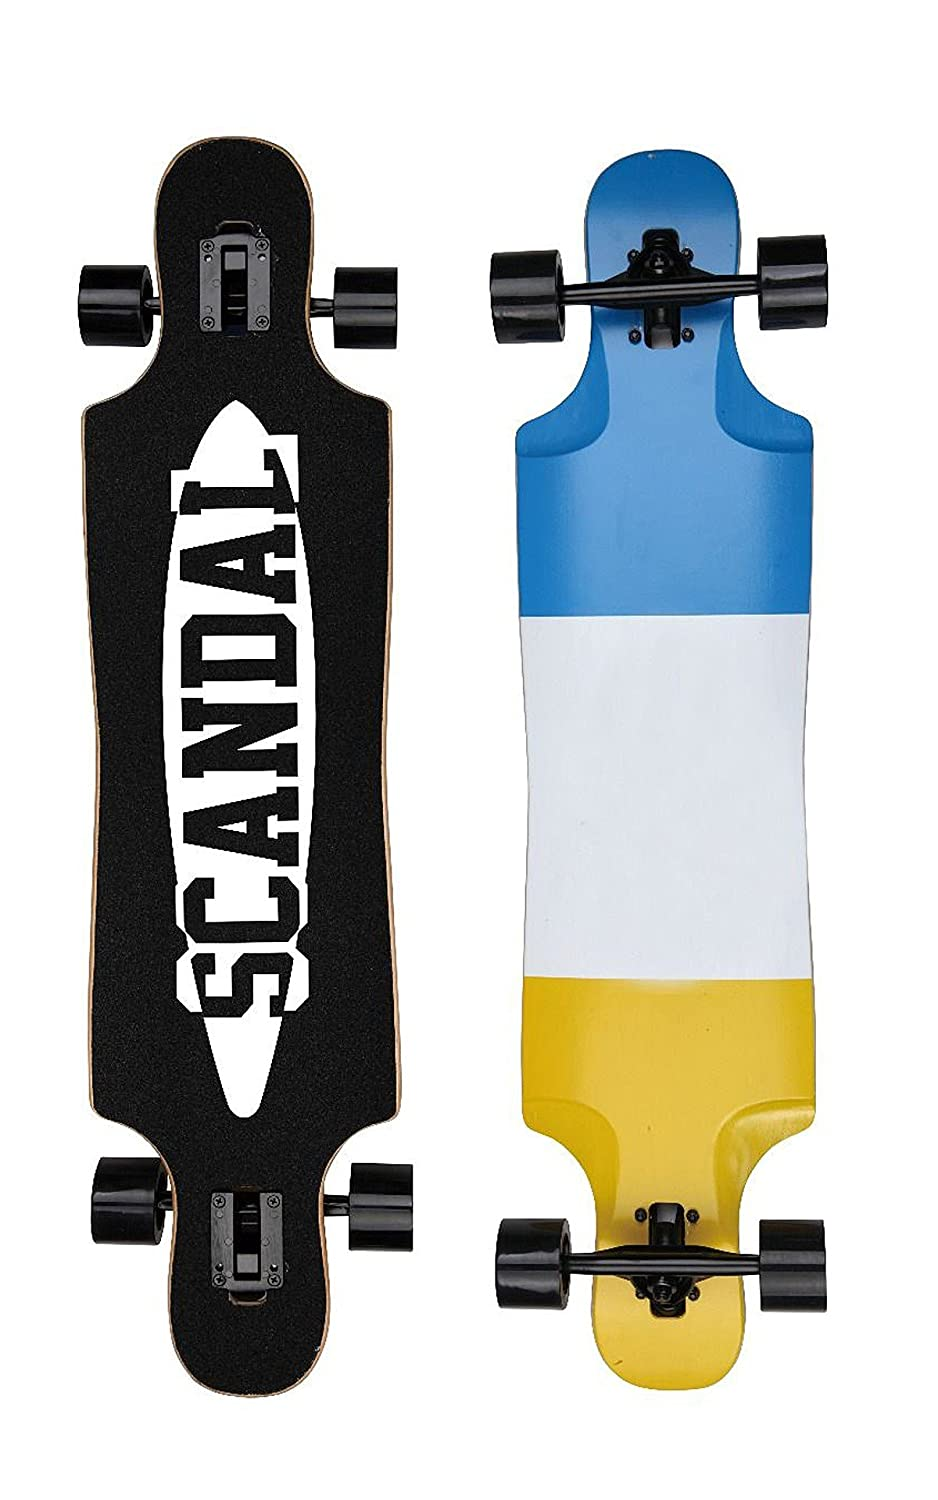 d8930d32d250d Scandal Longboard Cruiser ABEC 11 – High Speed 104 cm Érable canadien  Planche de couches